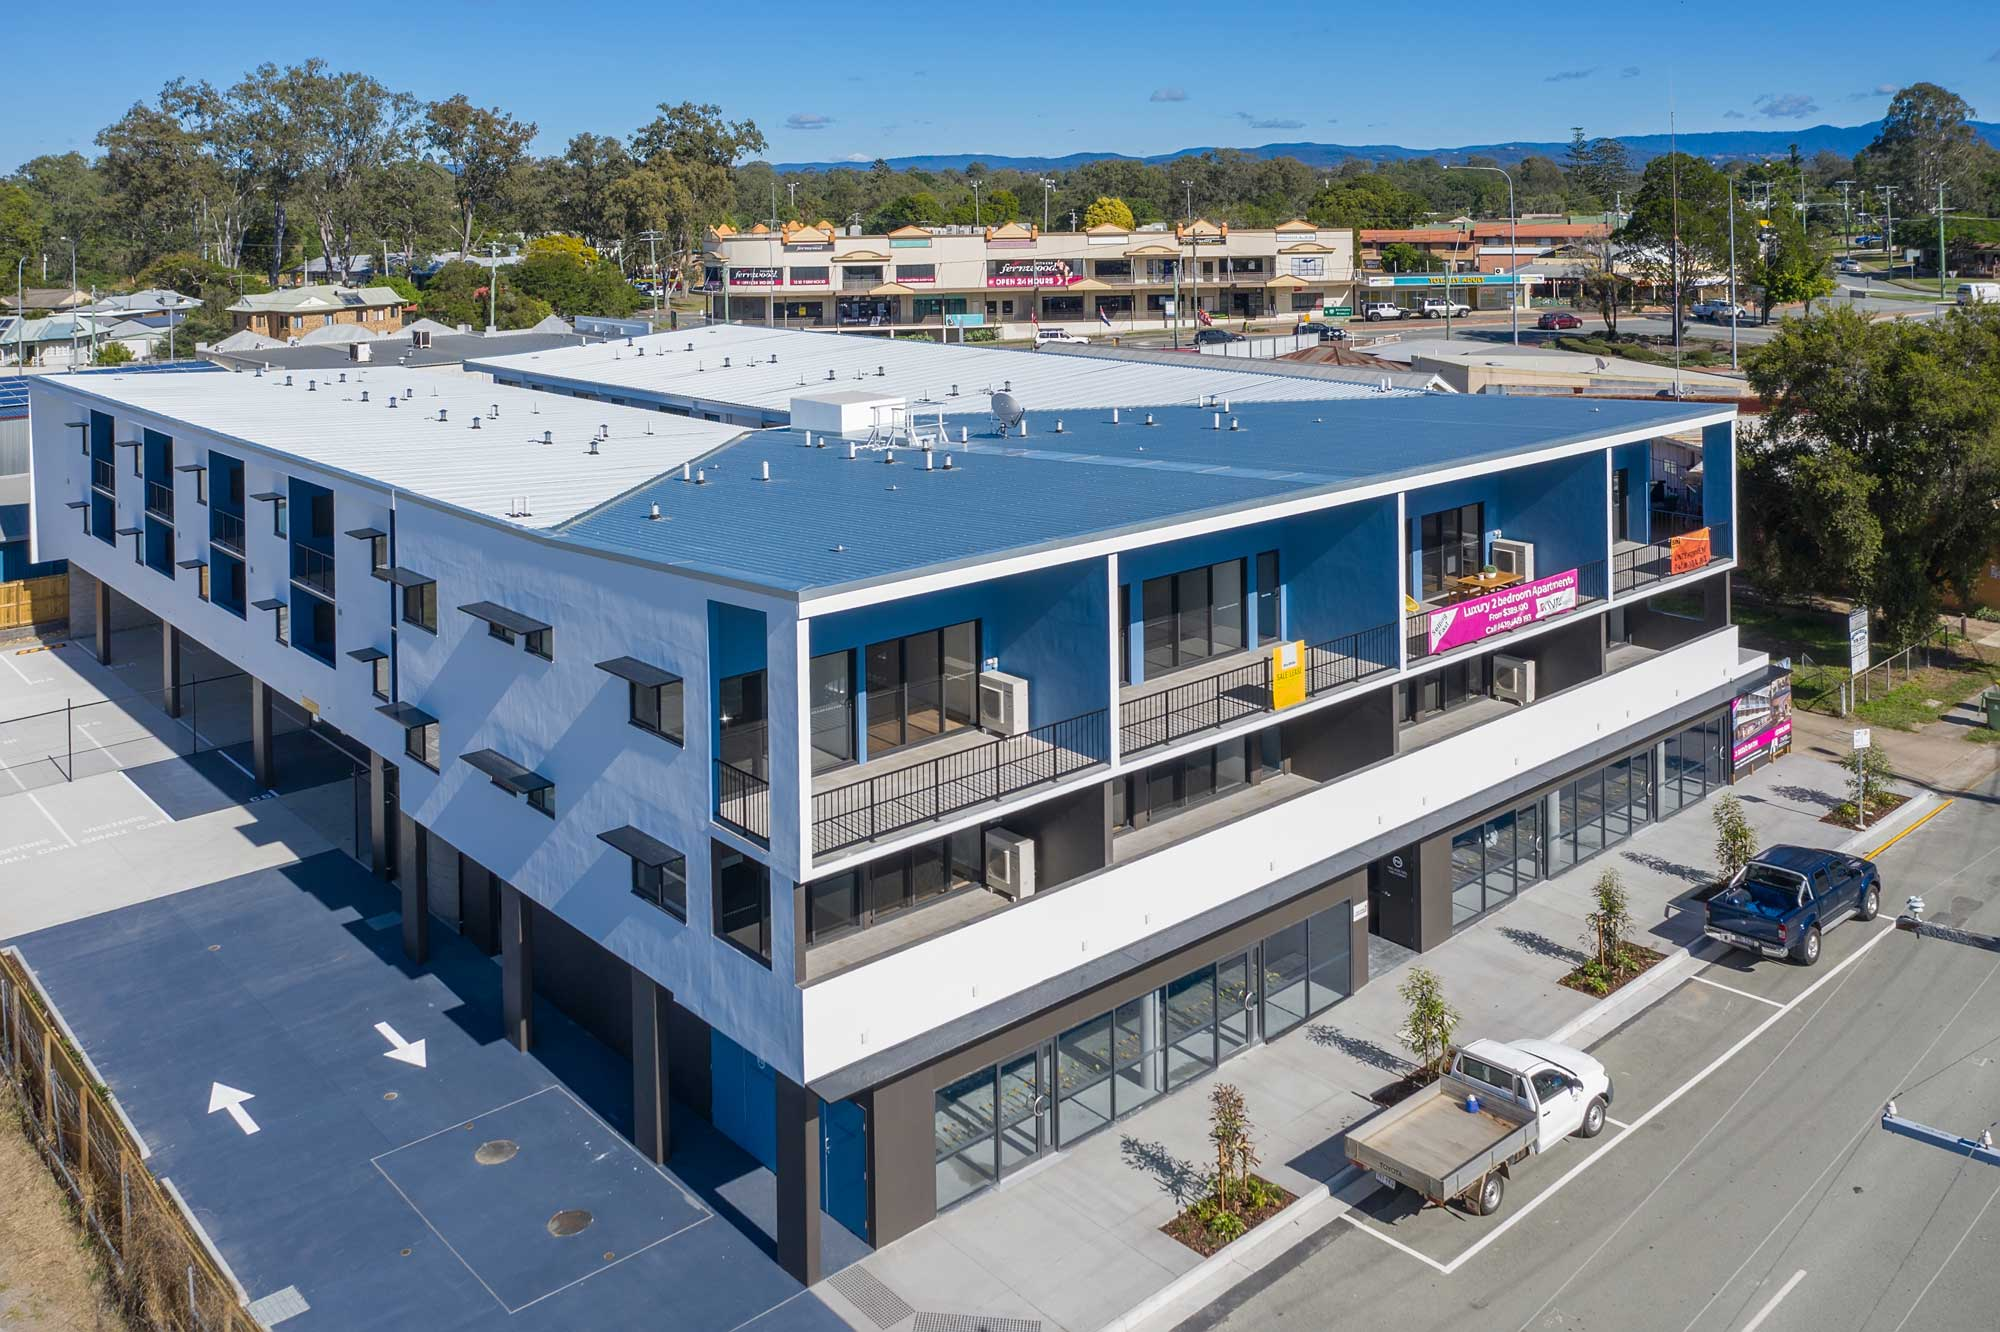 drone photography for property sub division marketing at Ormiston, Redland Bay area